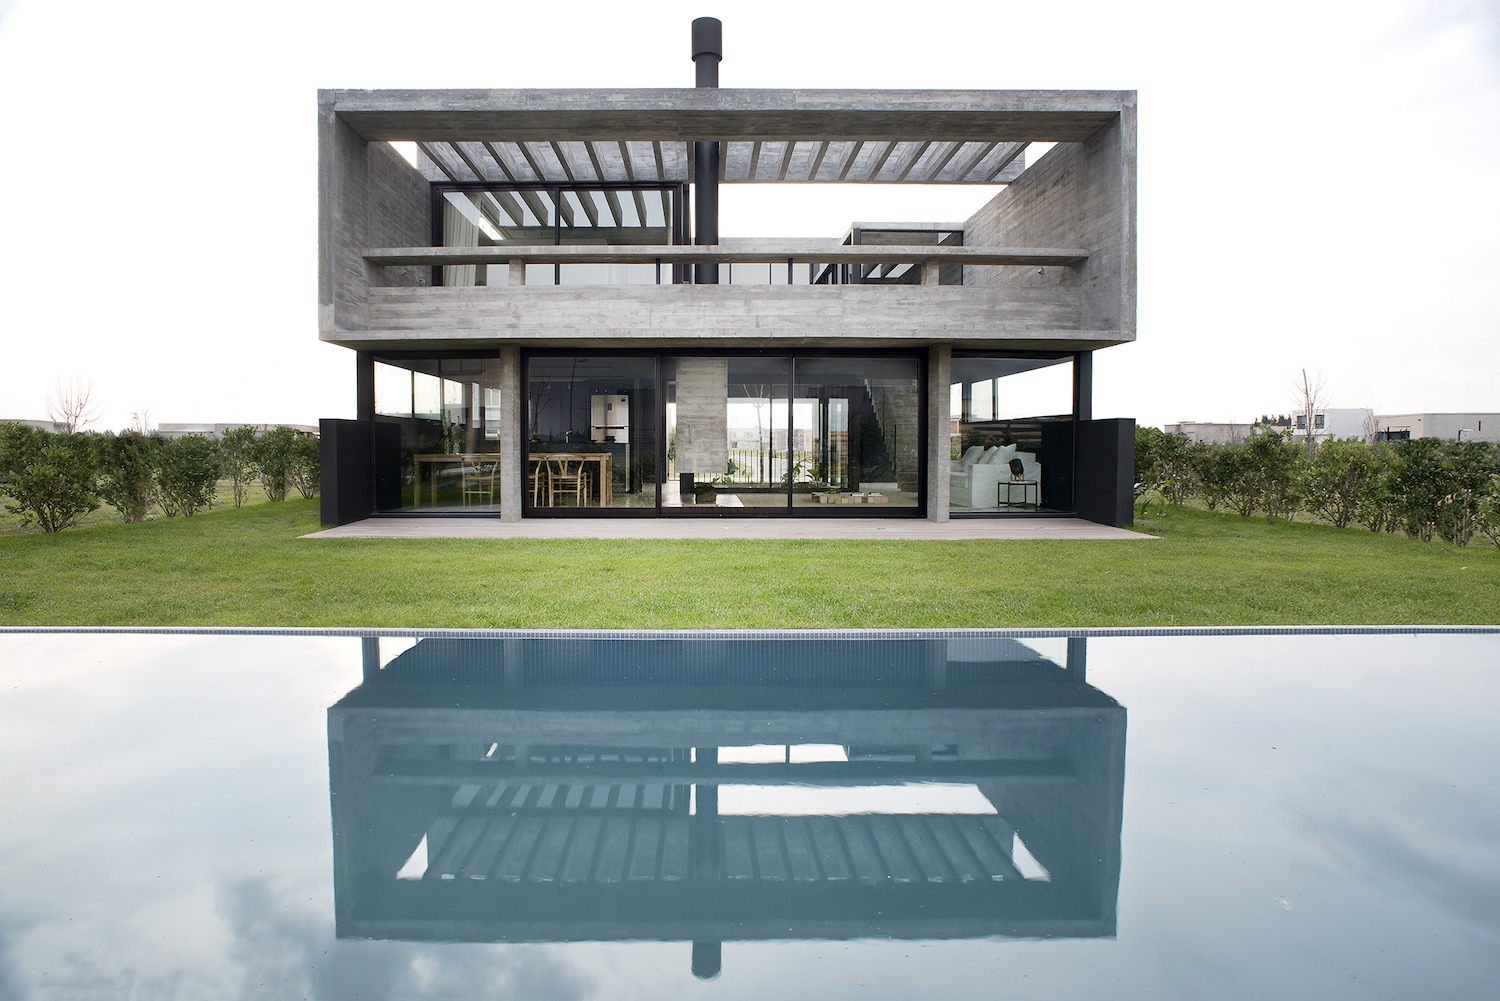 reflection of the concrete house in the pool